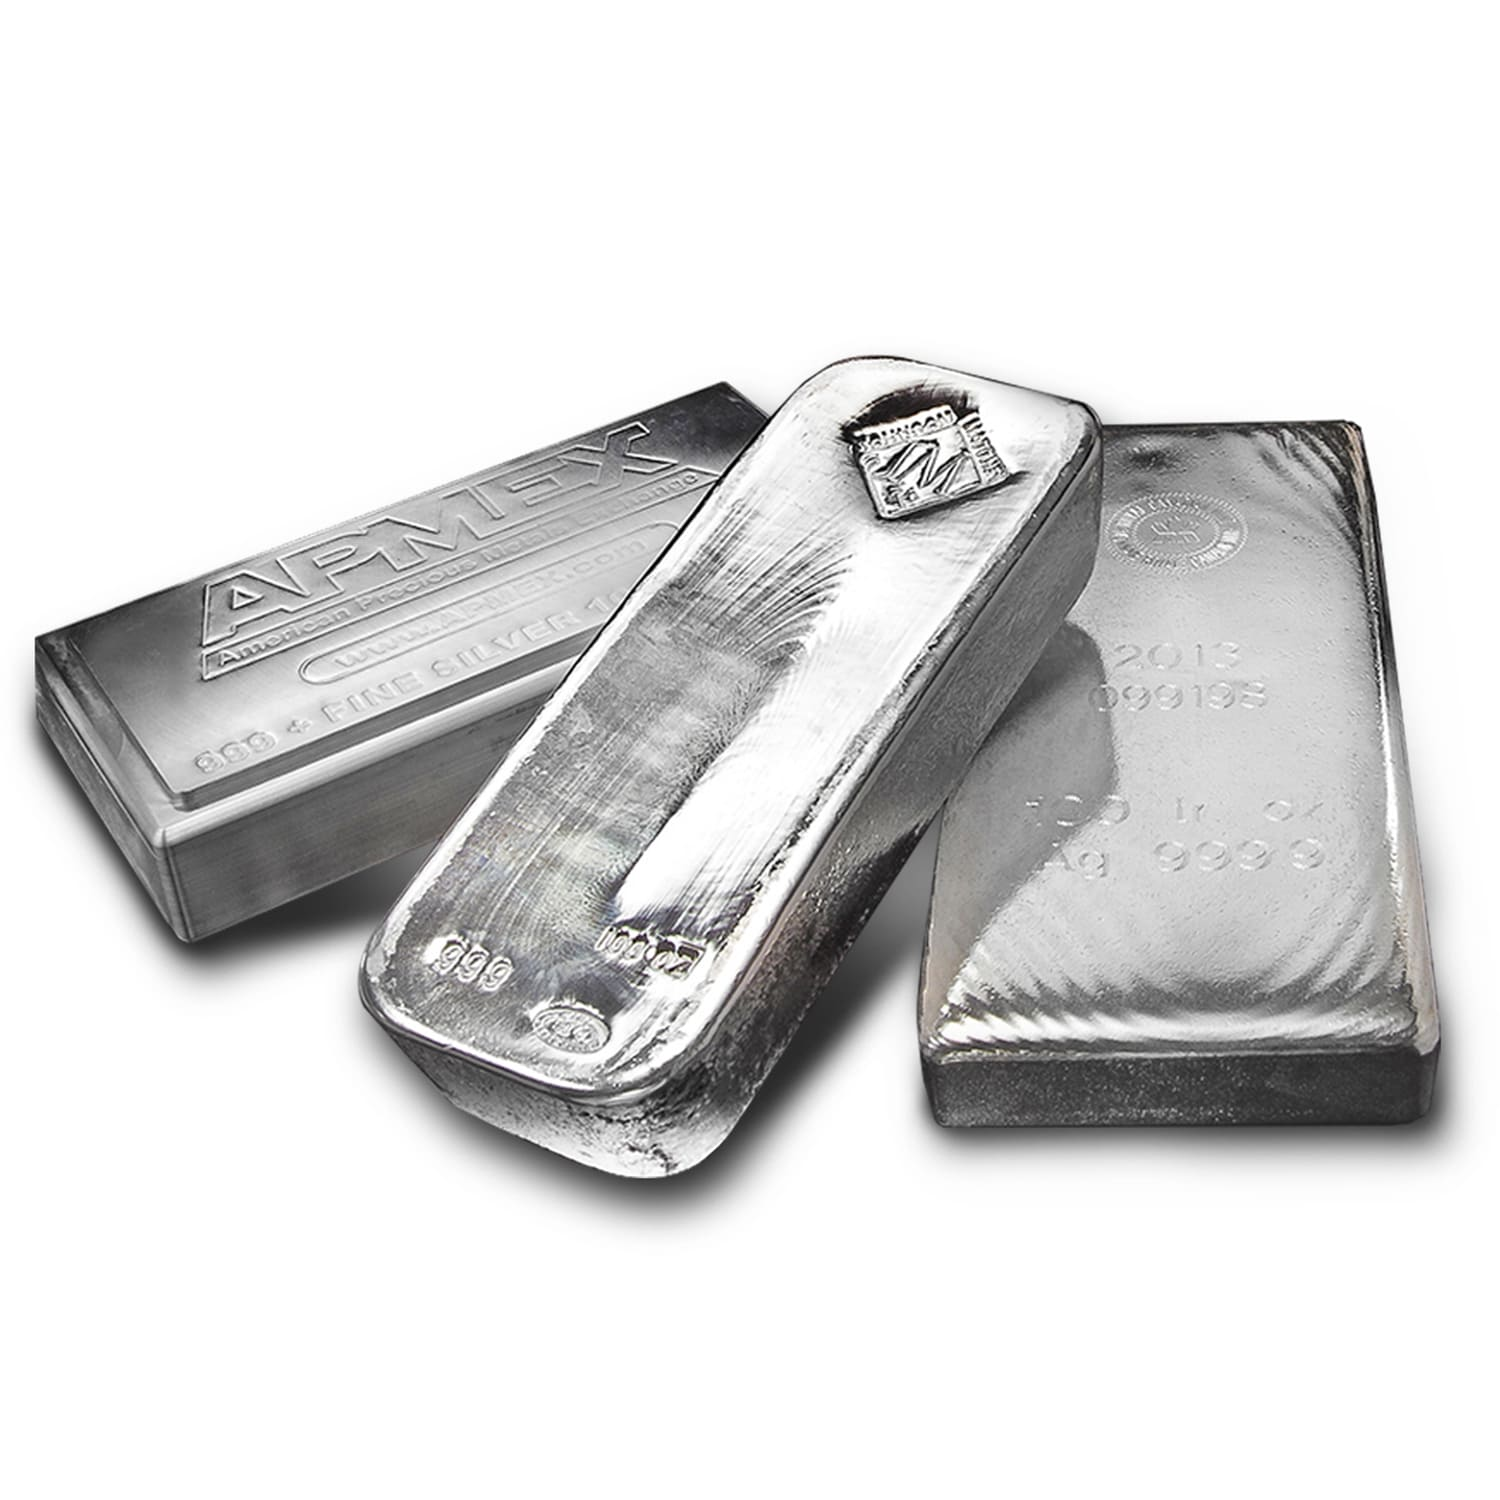 101.75 oz Silver Bar - Secondary Market